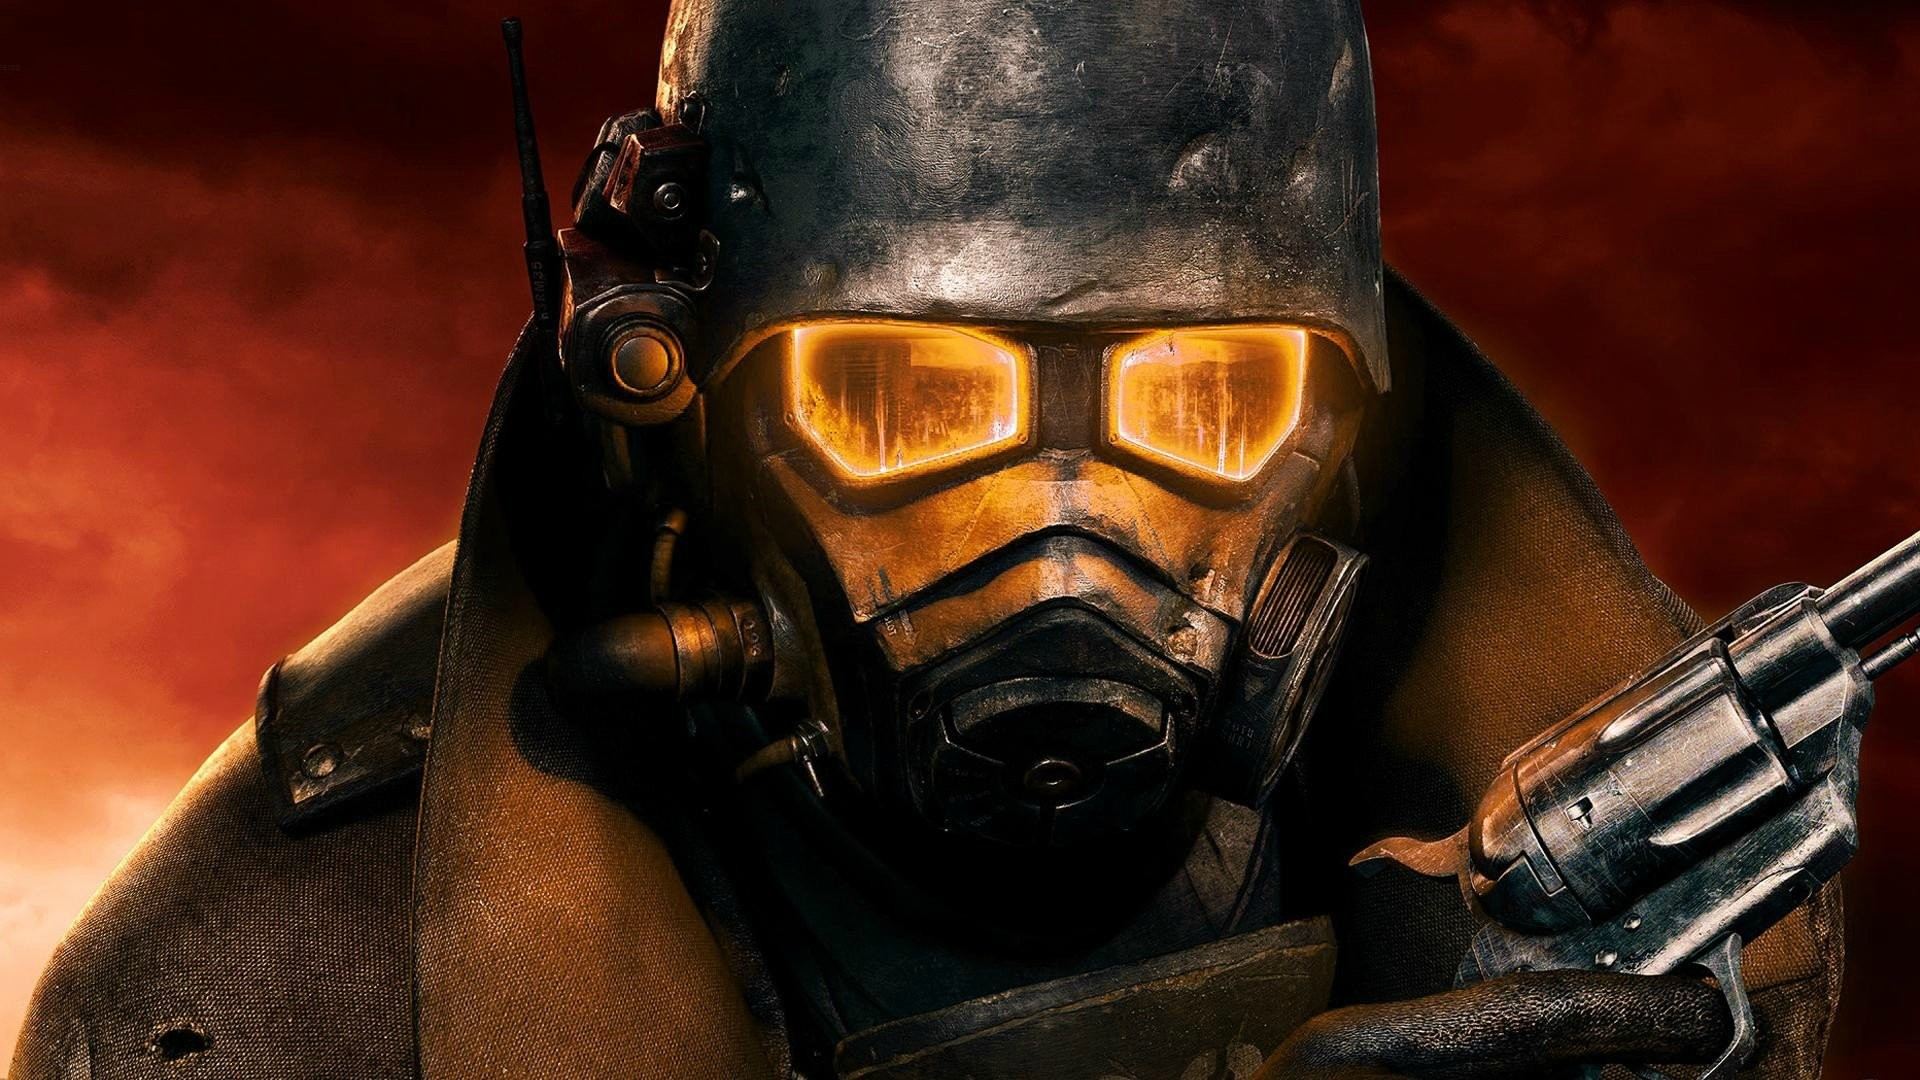 Collection Of Cool Game Backgrounds On Hdwallpapers - Fallout New Vegas Ncr Ranger , HD Wallpaper & Backgrounds